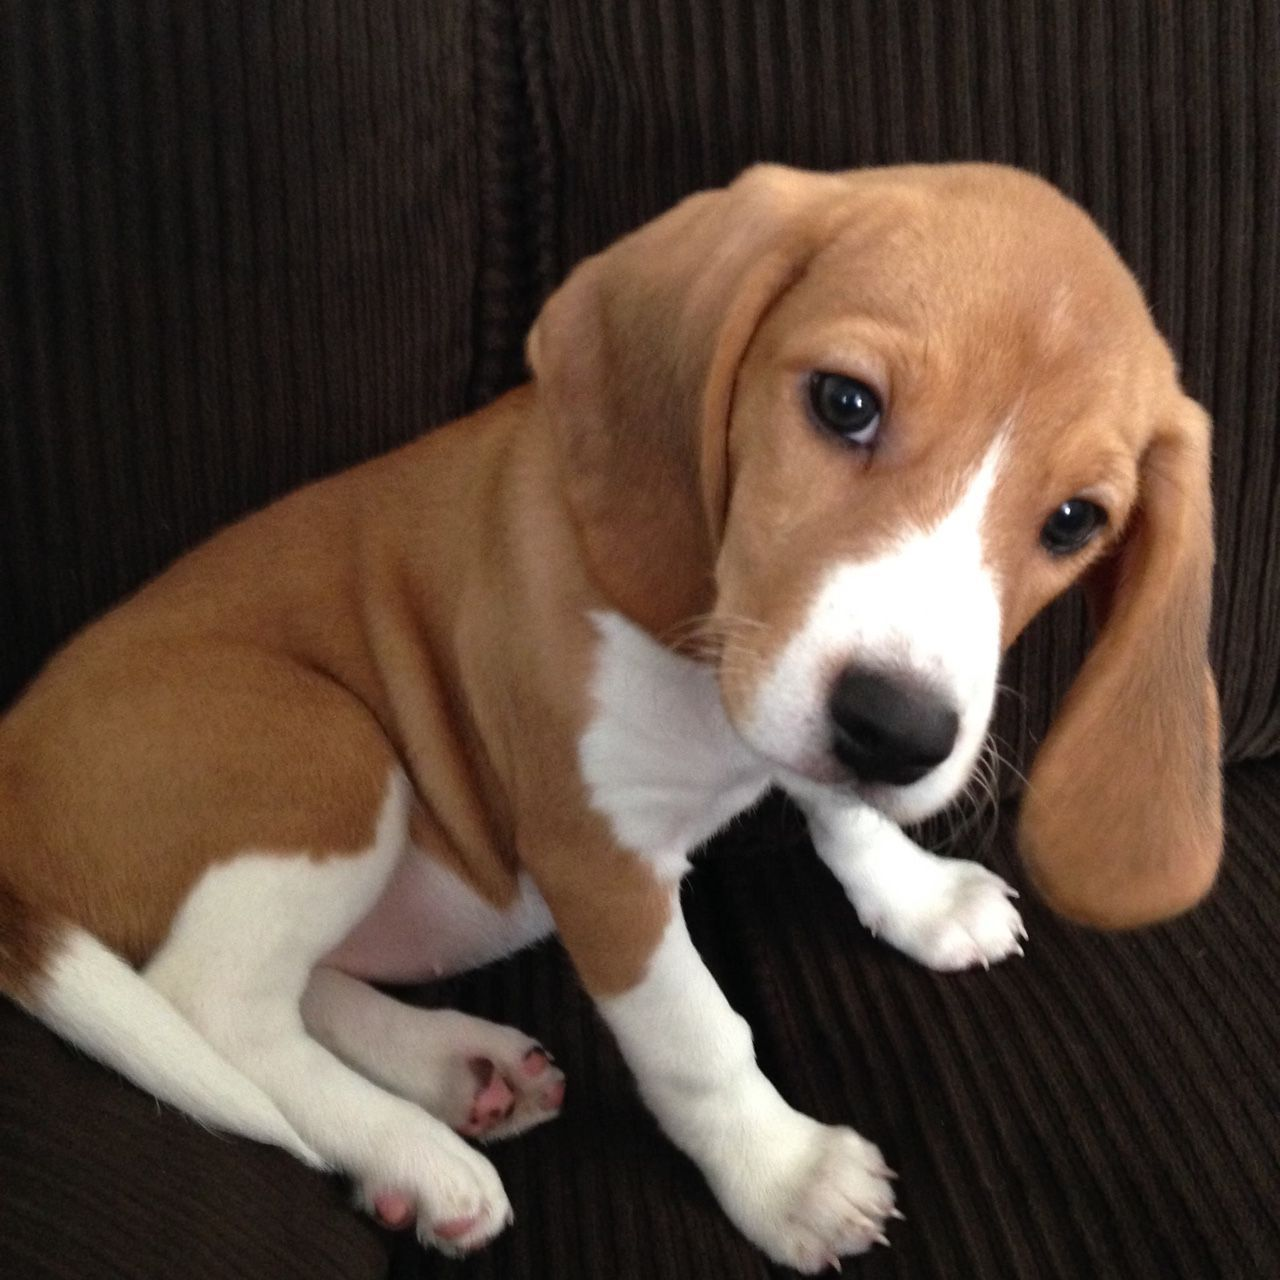 Beagles Are Awesome Compilation Beagle Puppy Beagle Dog White